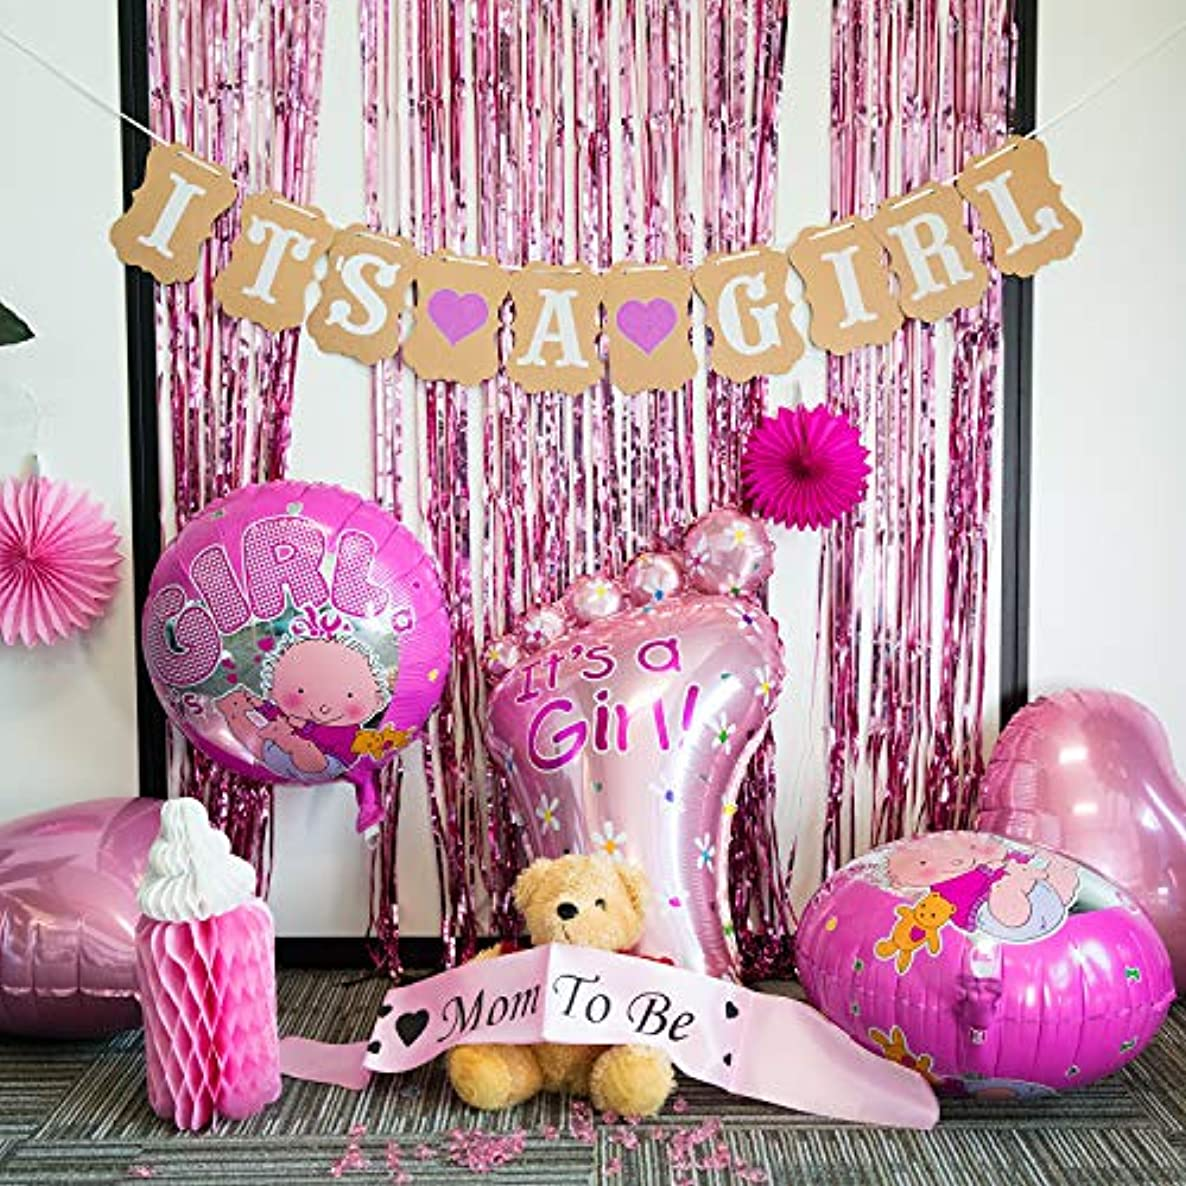 Baby Shower Decorations for Girl - Baby Shower Decorations: It's a Girl Pennant Banner& Mom to Be Sash, Baby Girl Shower Decorations Kit with Banners, Balloons, Pom Poms and Lanterns - Pink